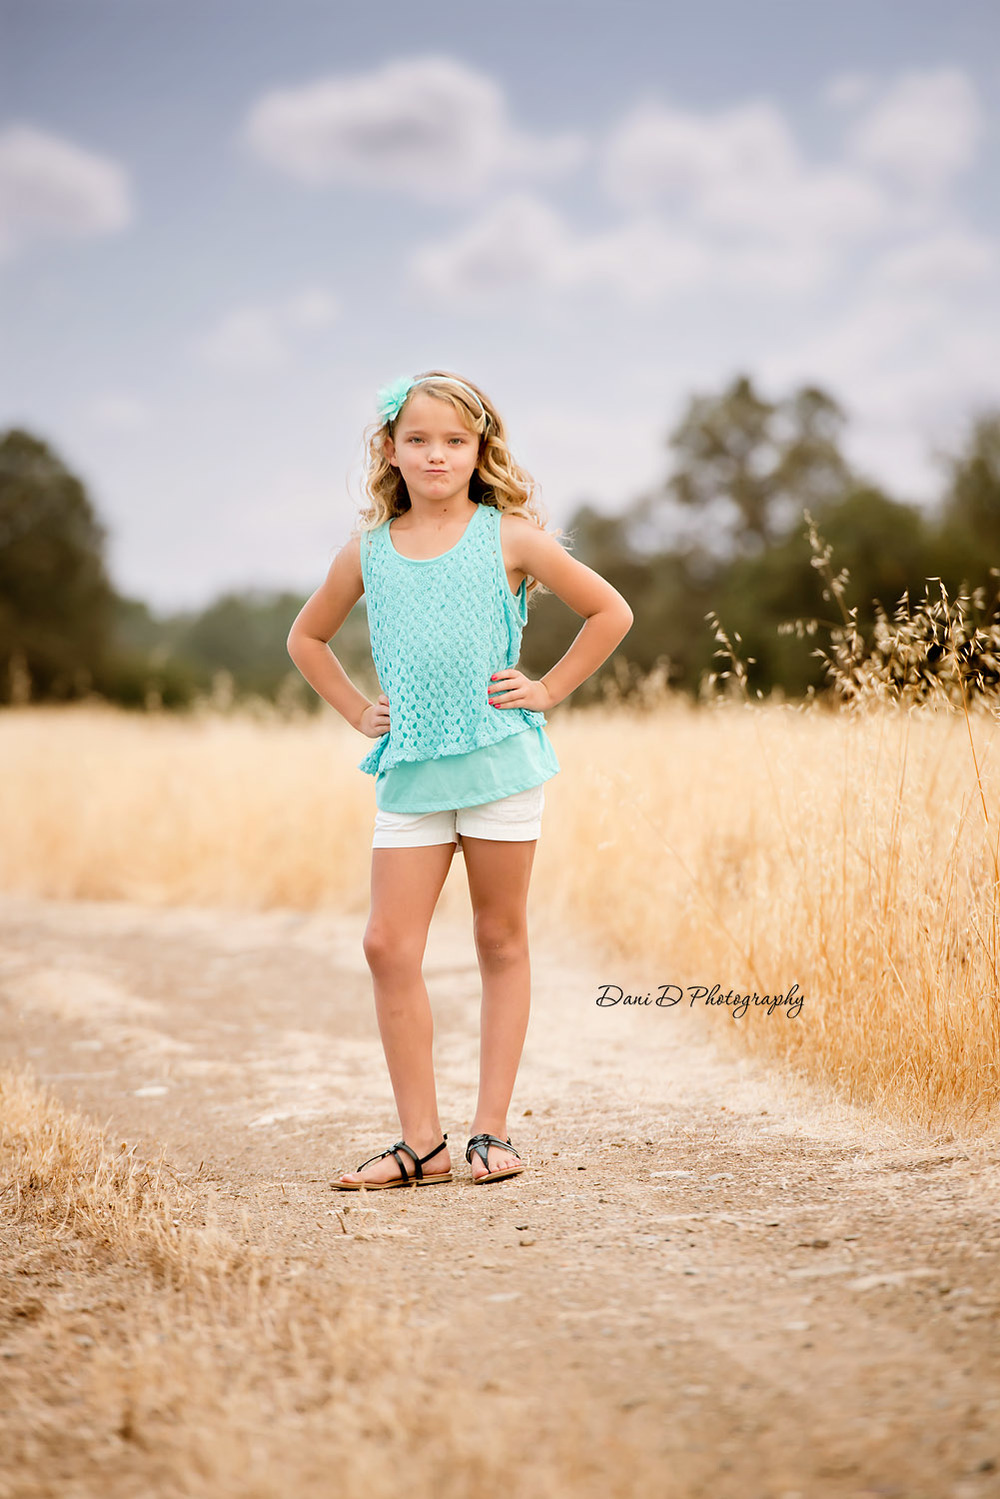 Female child model in field - Redding CA photographer - Dani D Photography